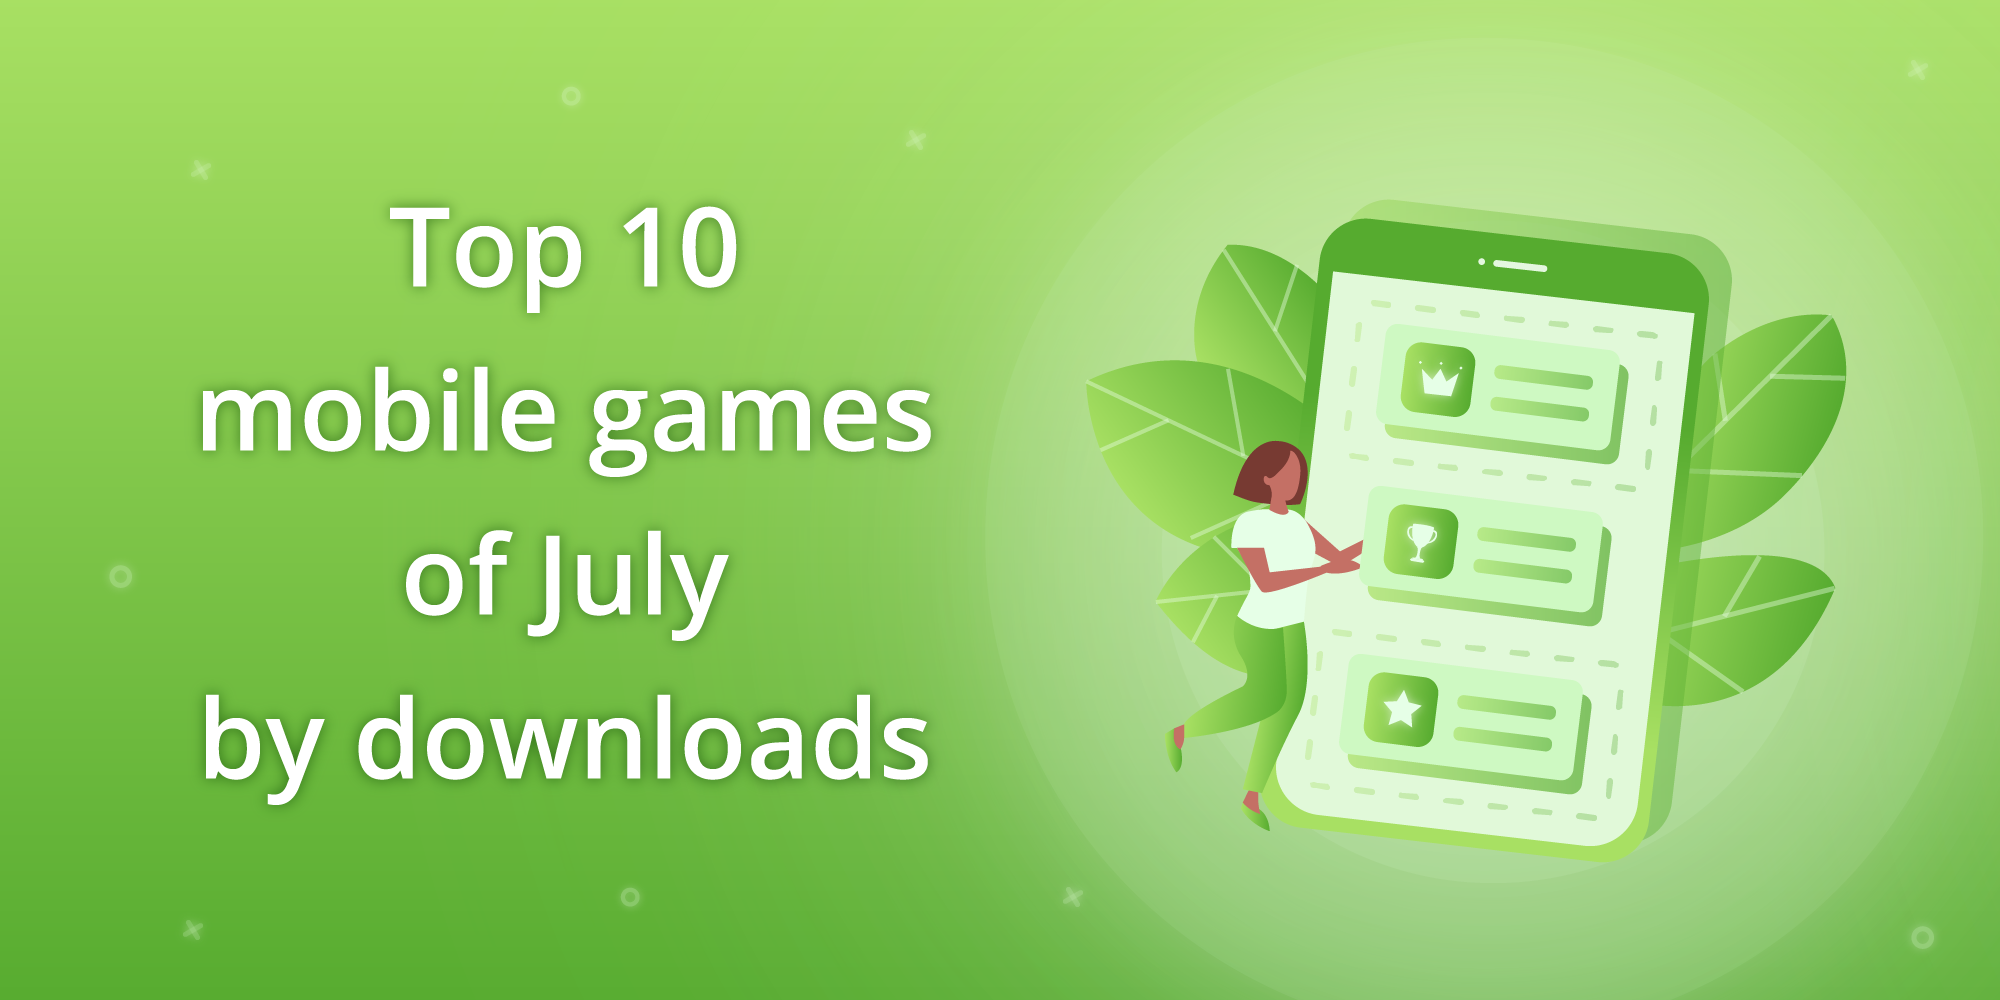 Top 10 mobile games of July by downloads